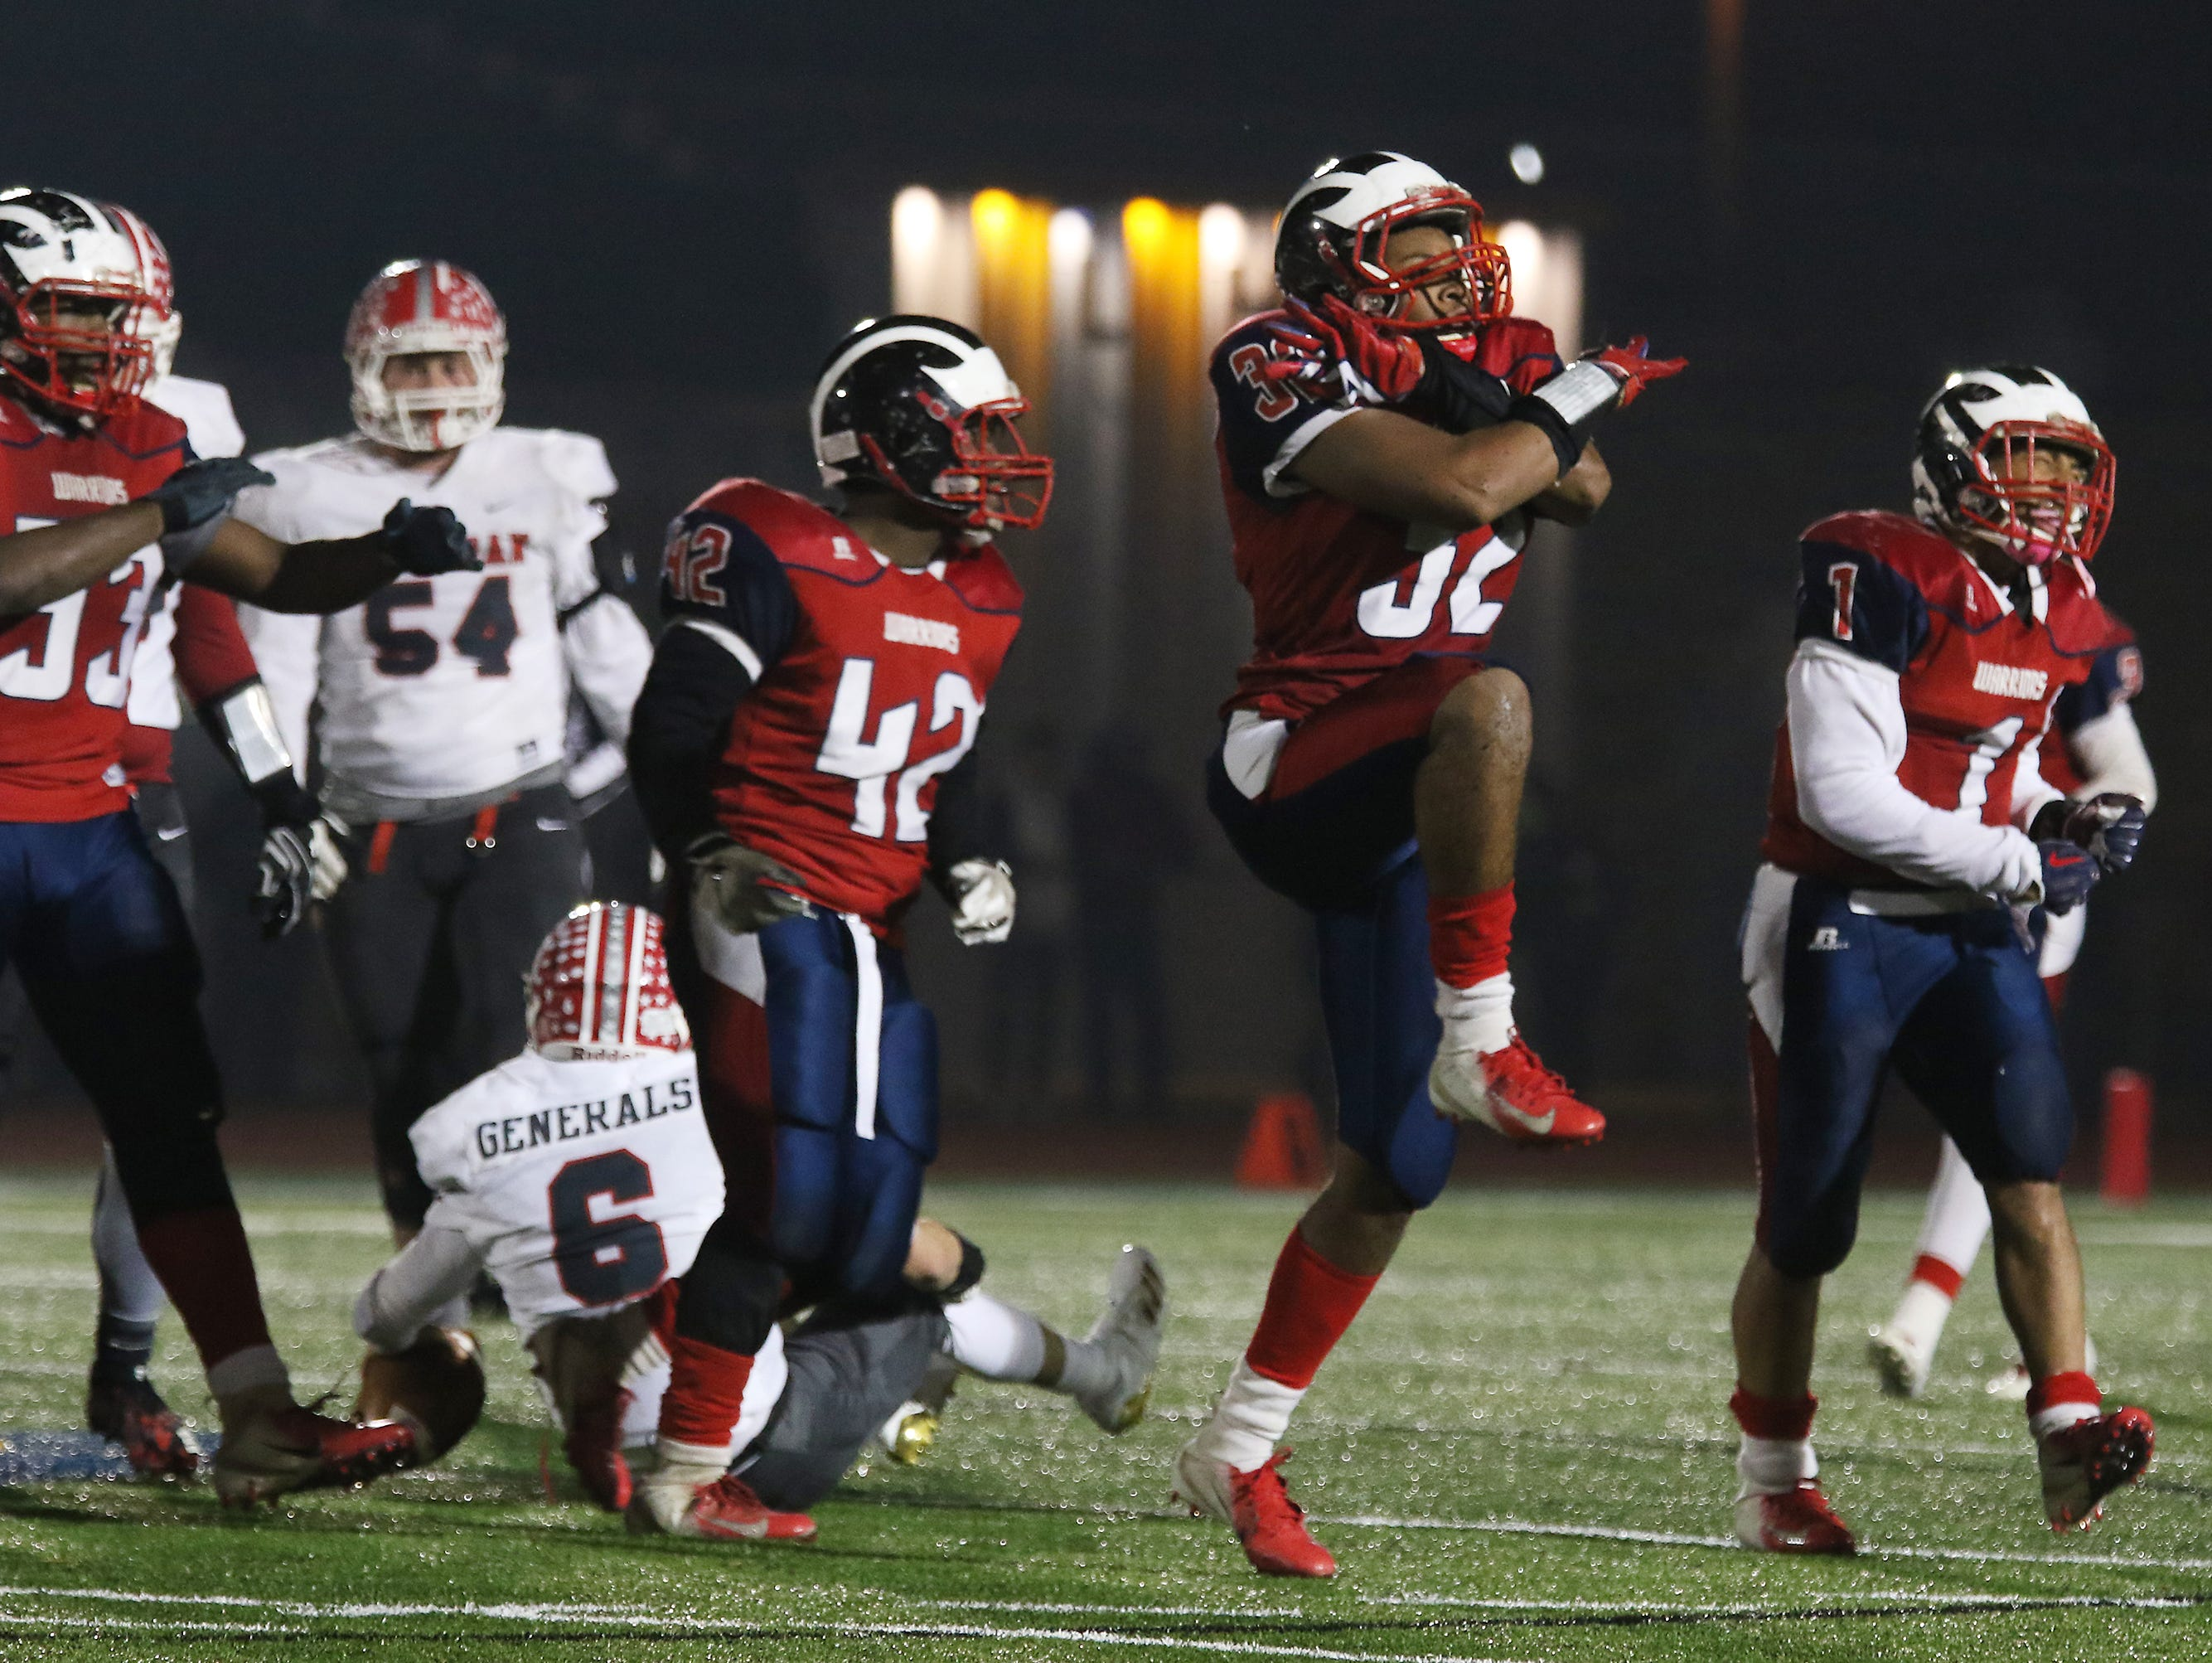 An Eastmoor player celebrates after sacking Sheridan's Ethan Heller.